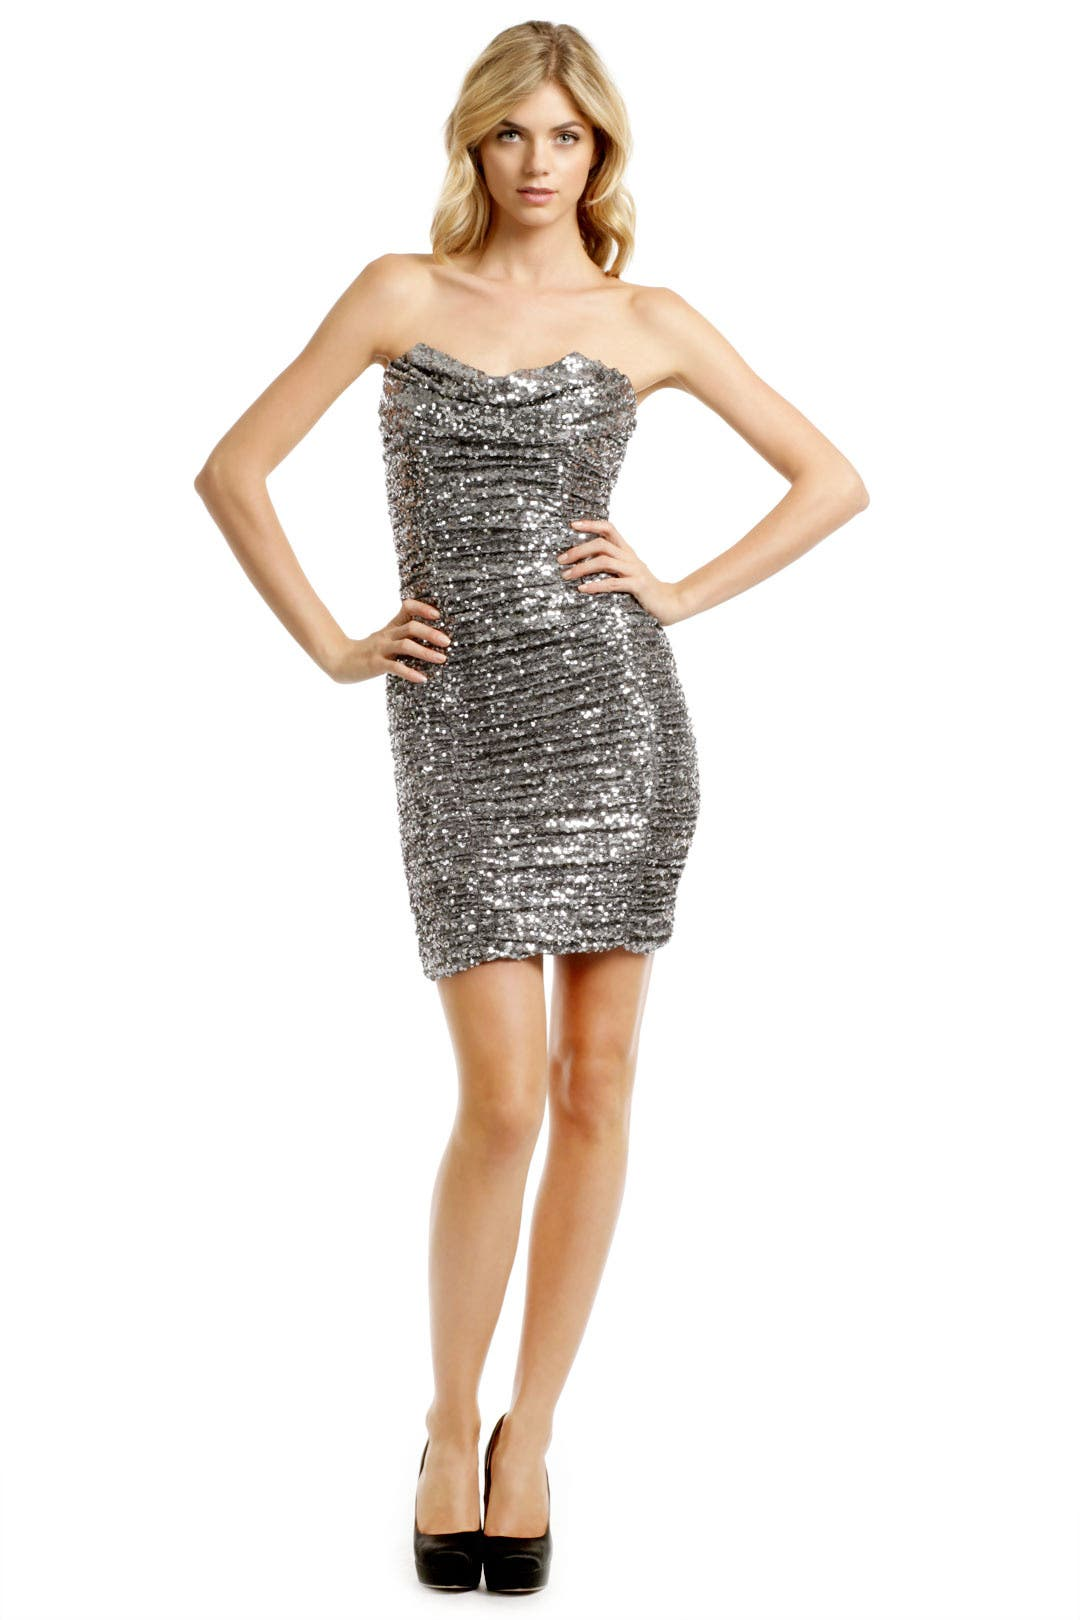 Silver Sequin Cocktail Dress by Badgley Mischka for $57 - Rent the ...